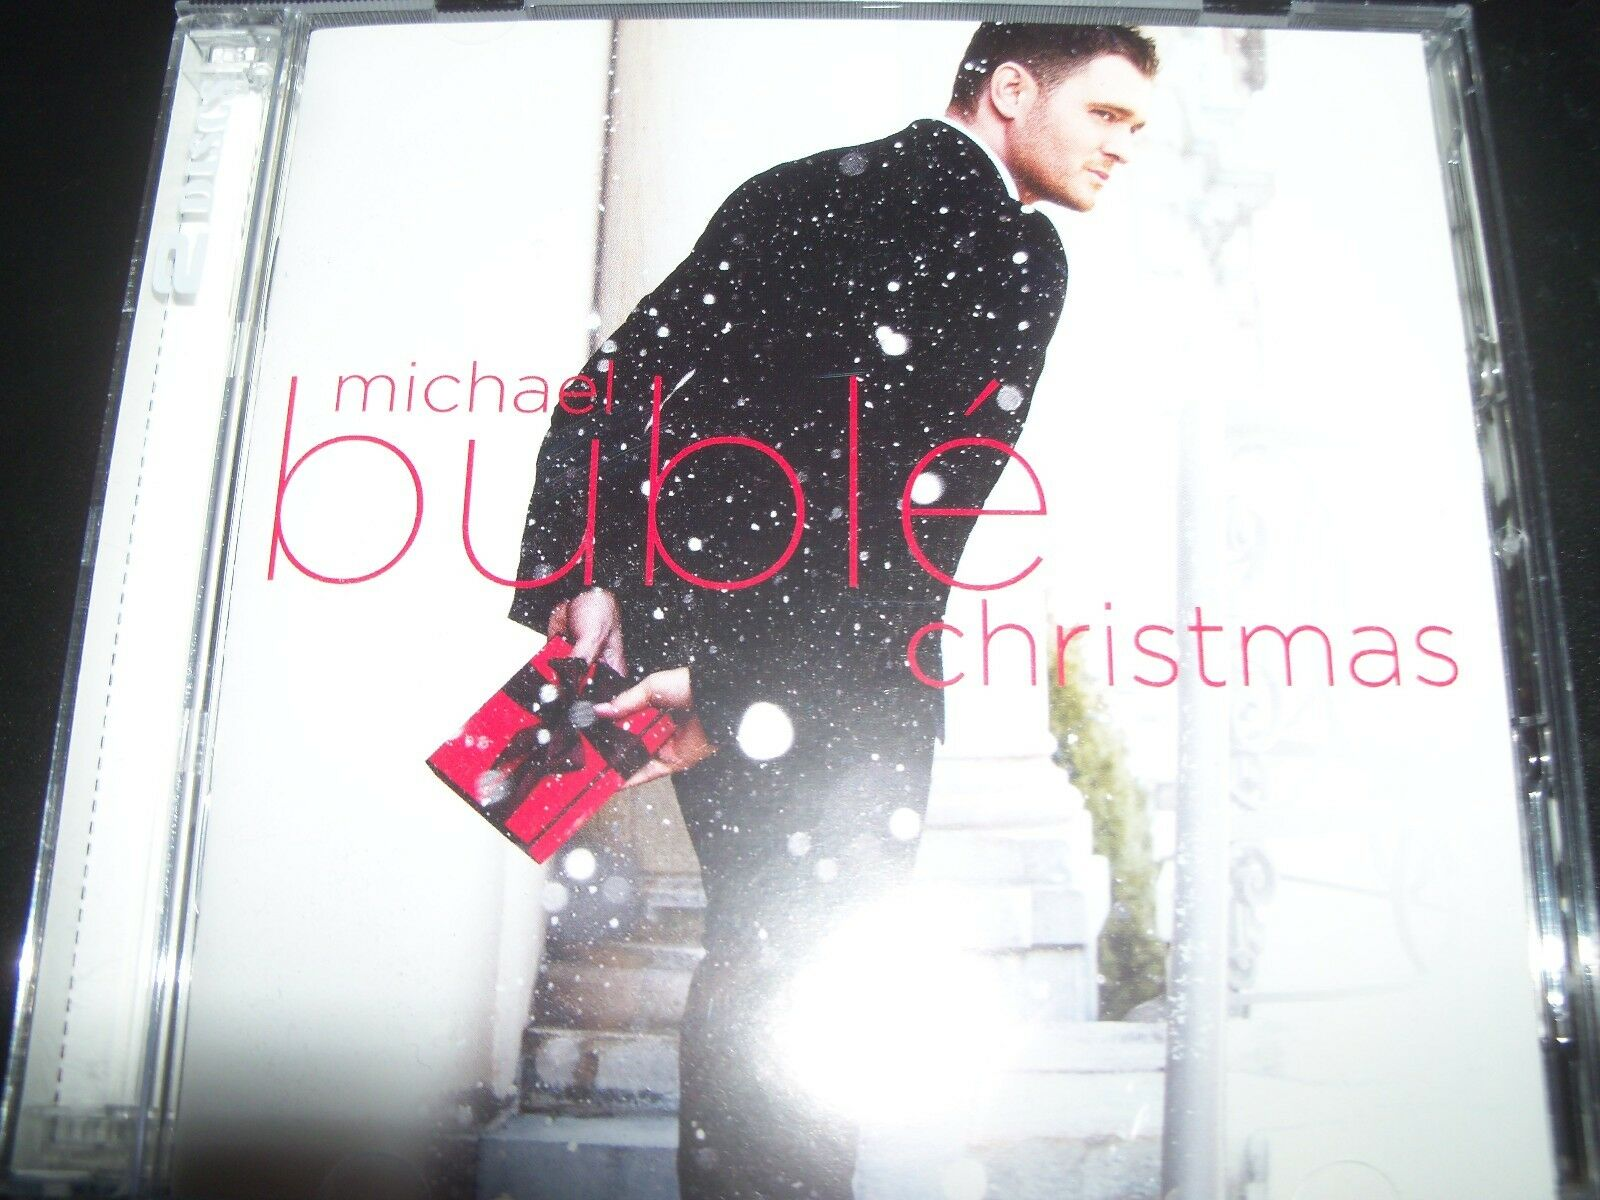 Christmas [Deluxe Edition] by Michael Bublé (CD, Oct-2011) | eBay